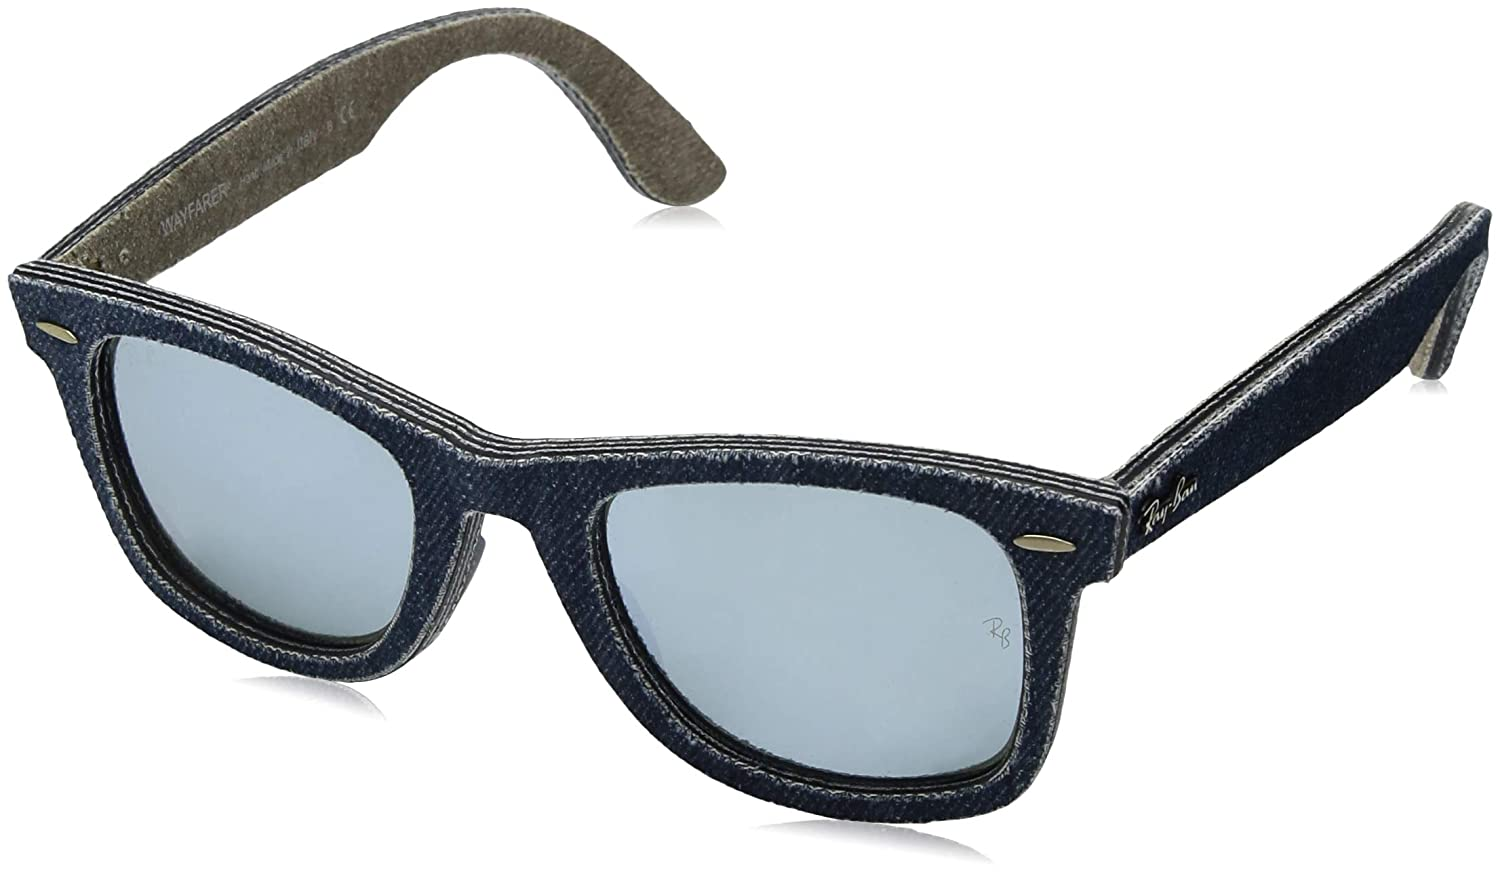 660ef1ced5c Amazon.com  Ray-Ban Men s Wayfarer Square